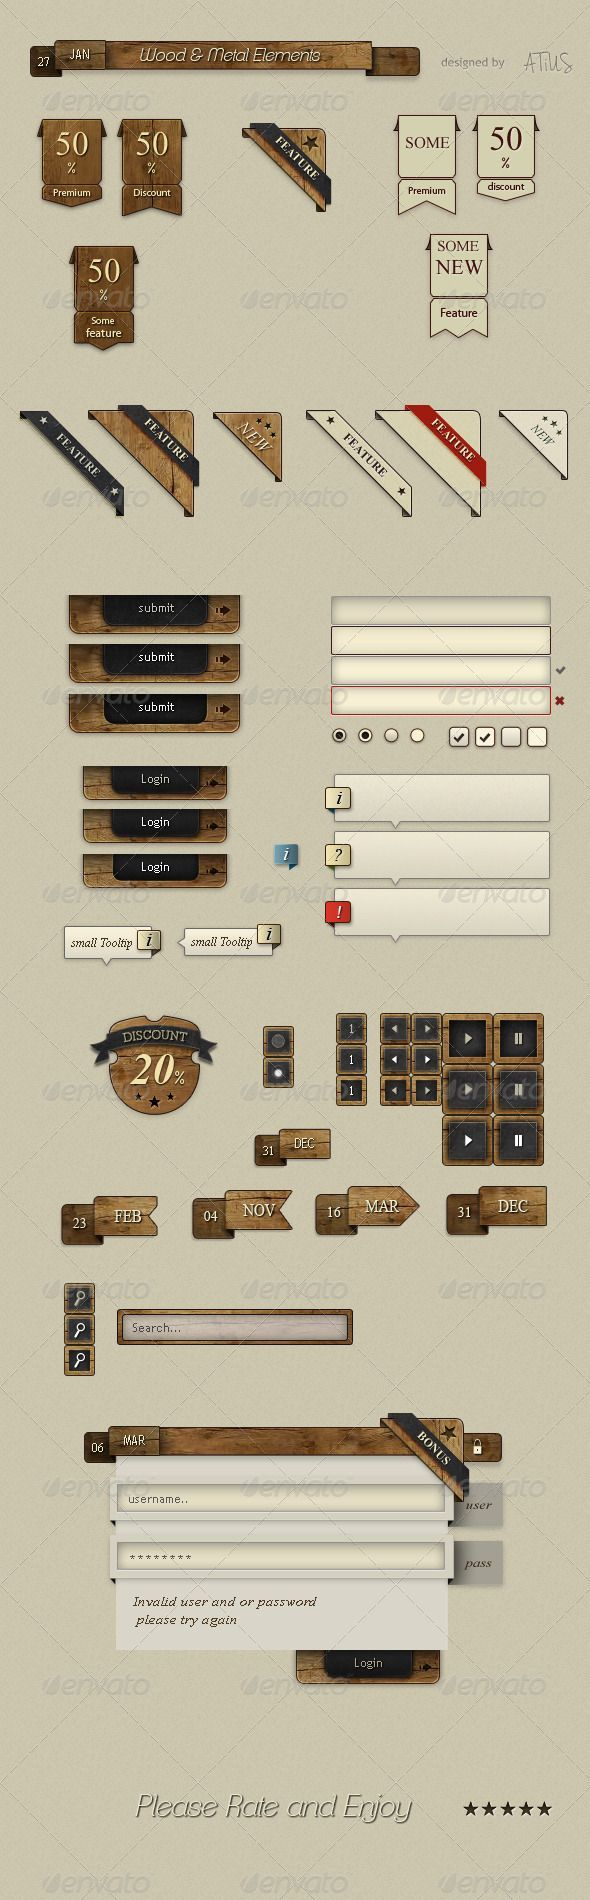 Wood & Metal UI - Buttons Web Elements game user interface gui ui | Create your own roleplaying game material w/ RPG Bard: www.rpgbard.com | Writing inspiration for Dungeons and Dragons DND D&D Pathfinder PFRPG Warhammer 40k Star Wars Shadowrun Call of Cthulhu Lord of the Rings LoTR + d20 fantasy science fiction scifi horror design | Not Trusty Sword art: click artwork for source